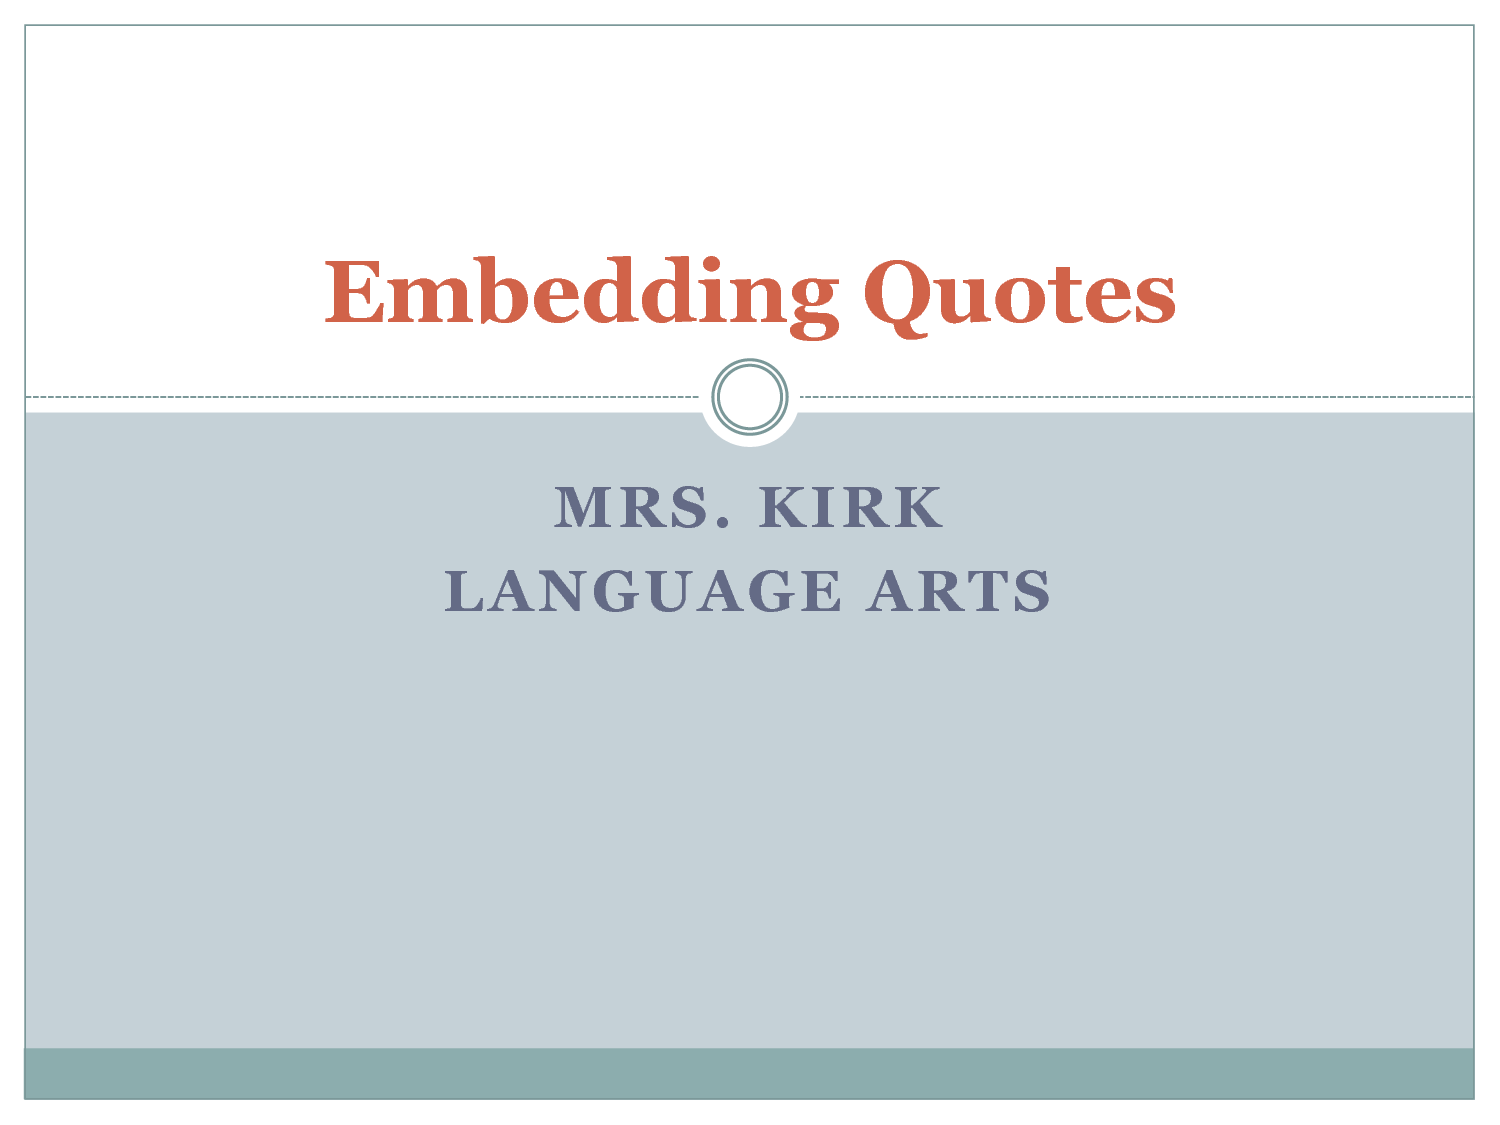 Embedded quote #1